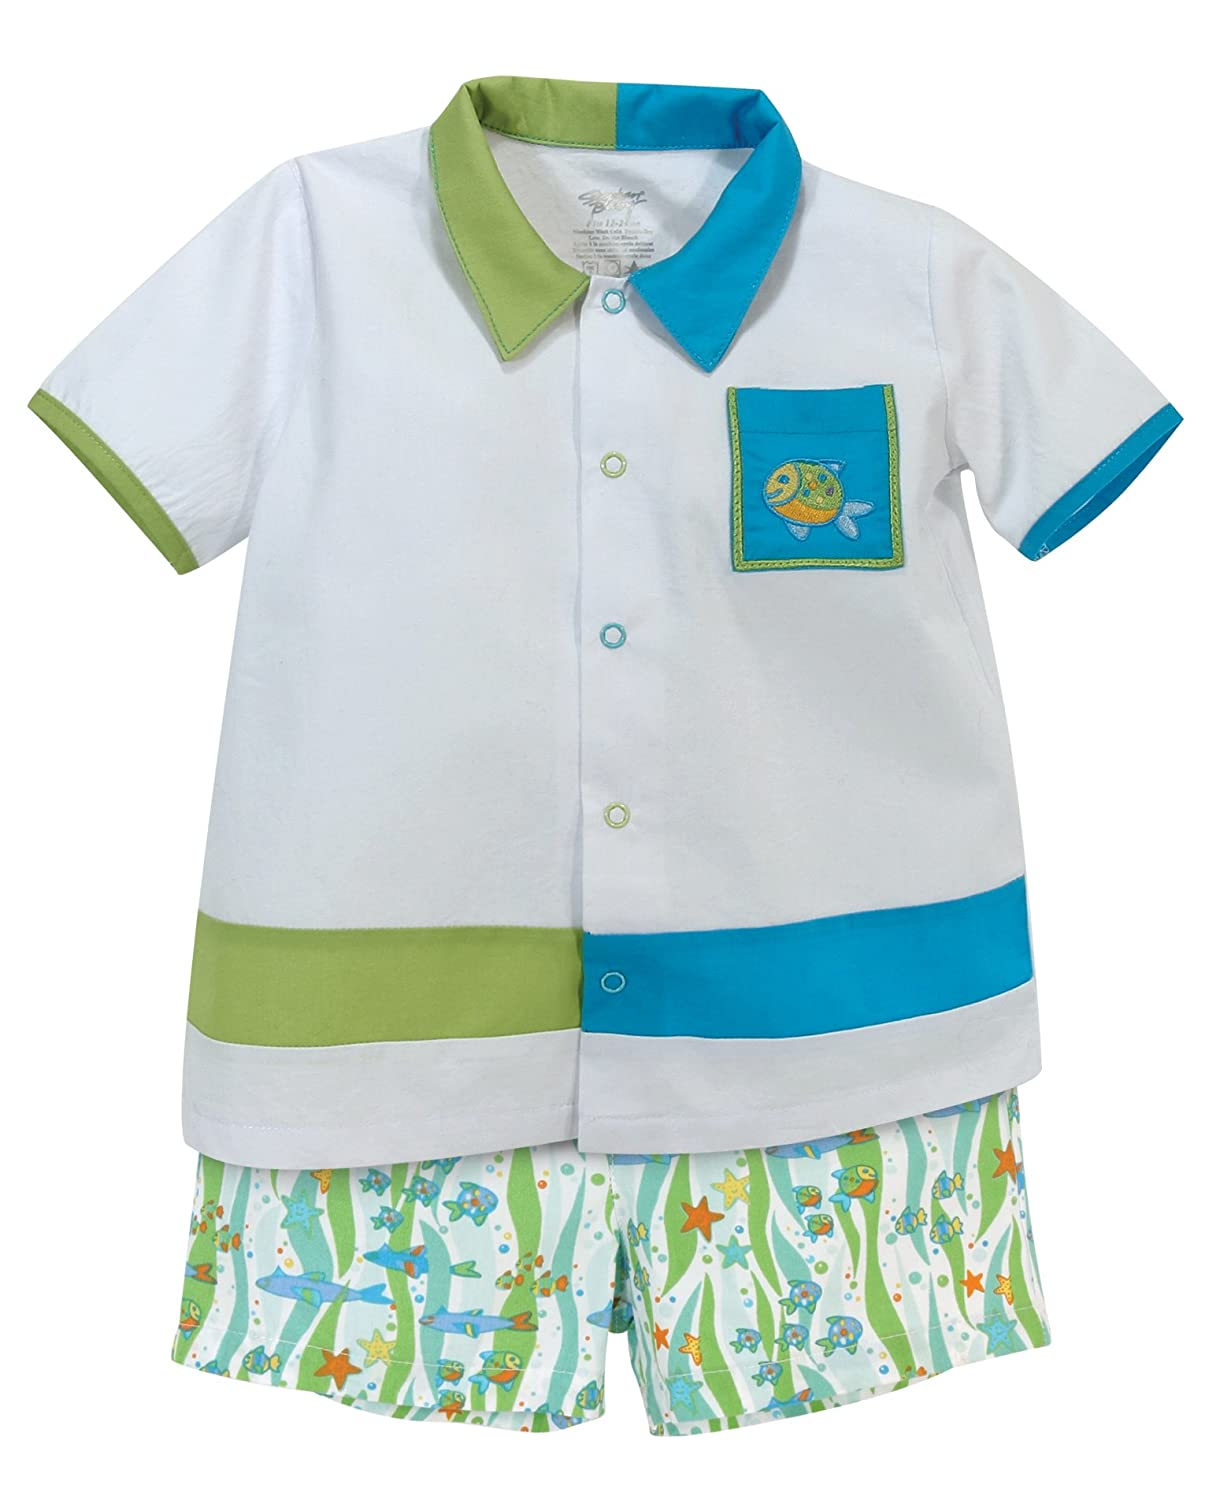 Stephan Baby Go Fish Bowling Shirt and Fishie Print Diaper Cover, 18-24 Months by Stephan Baby   B00WWPWZKO